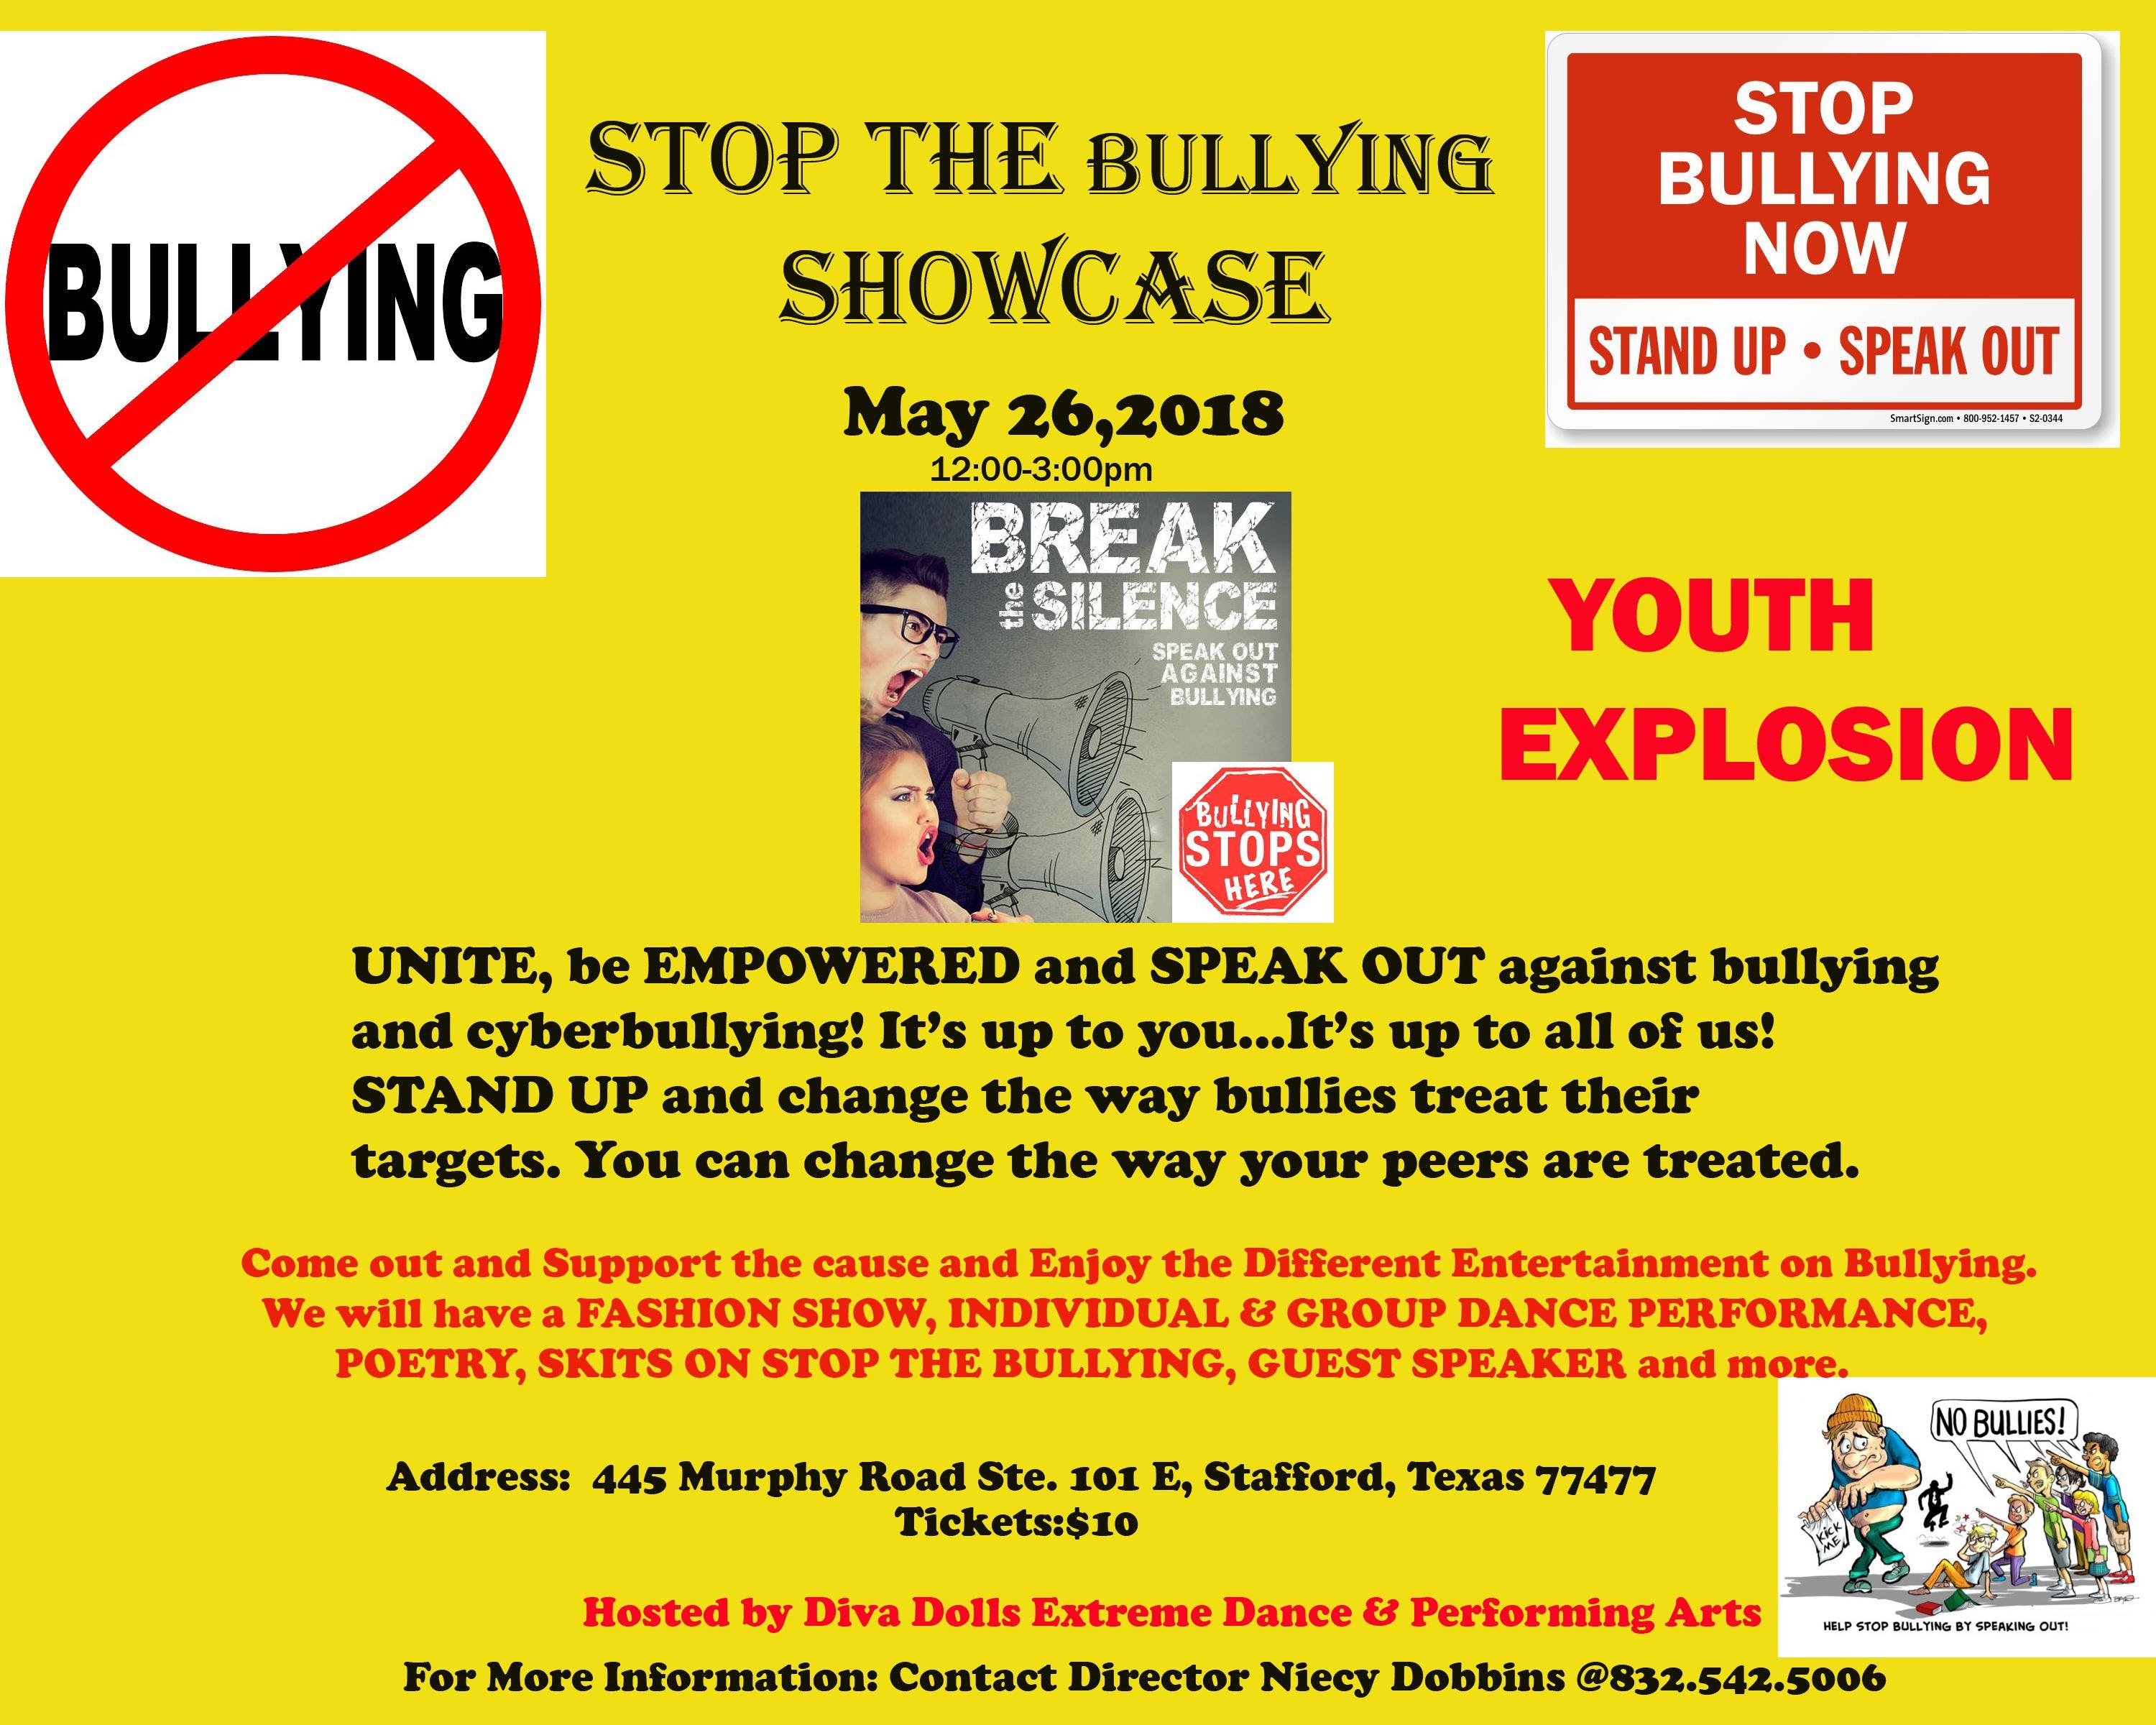 Stop the Bullying Showcase YOUTH EXPLOSION